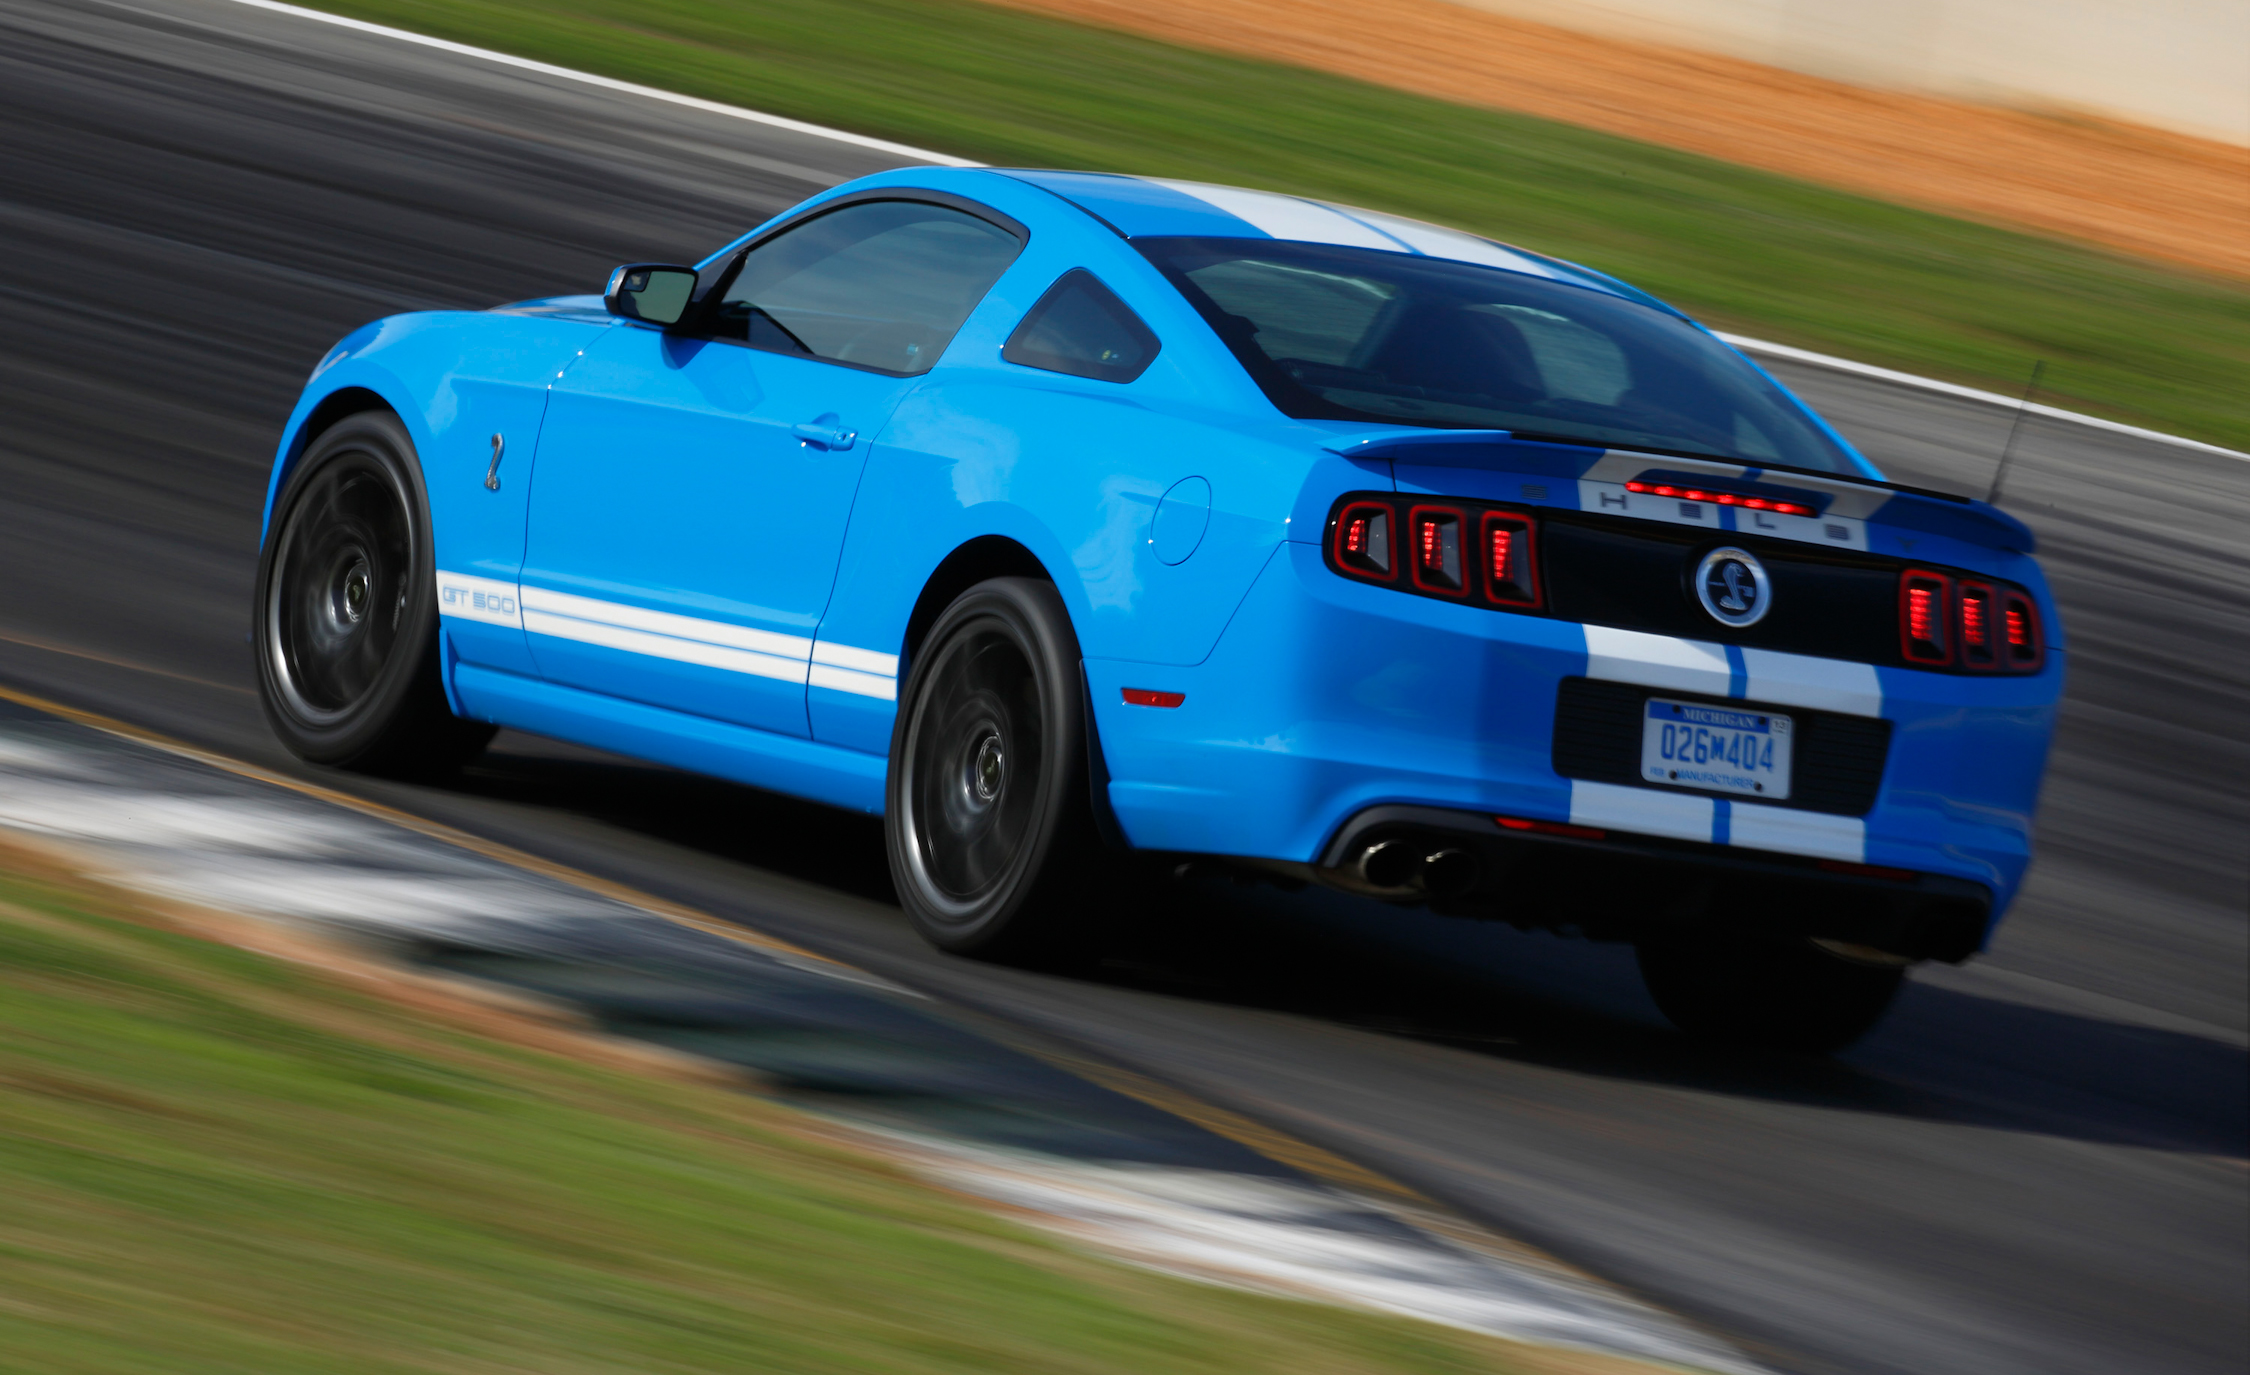 2013 Ford Mustang Shelby GT500 Blue Test Drive Rear And Side View (Photo 17 of 47)